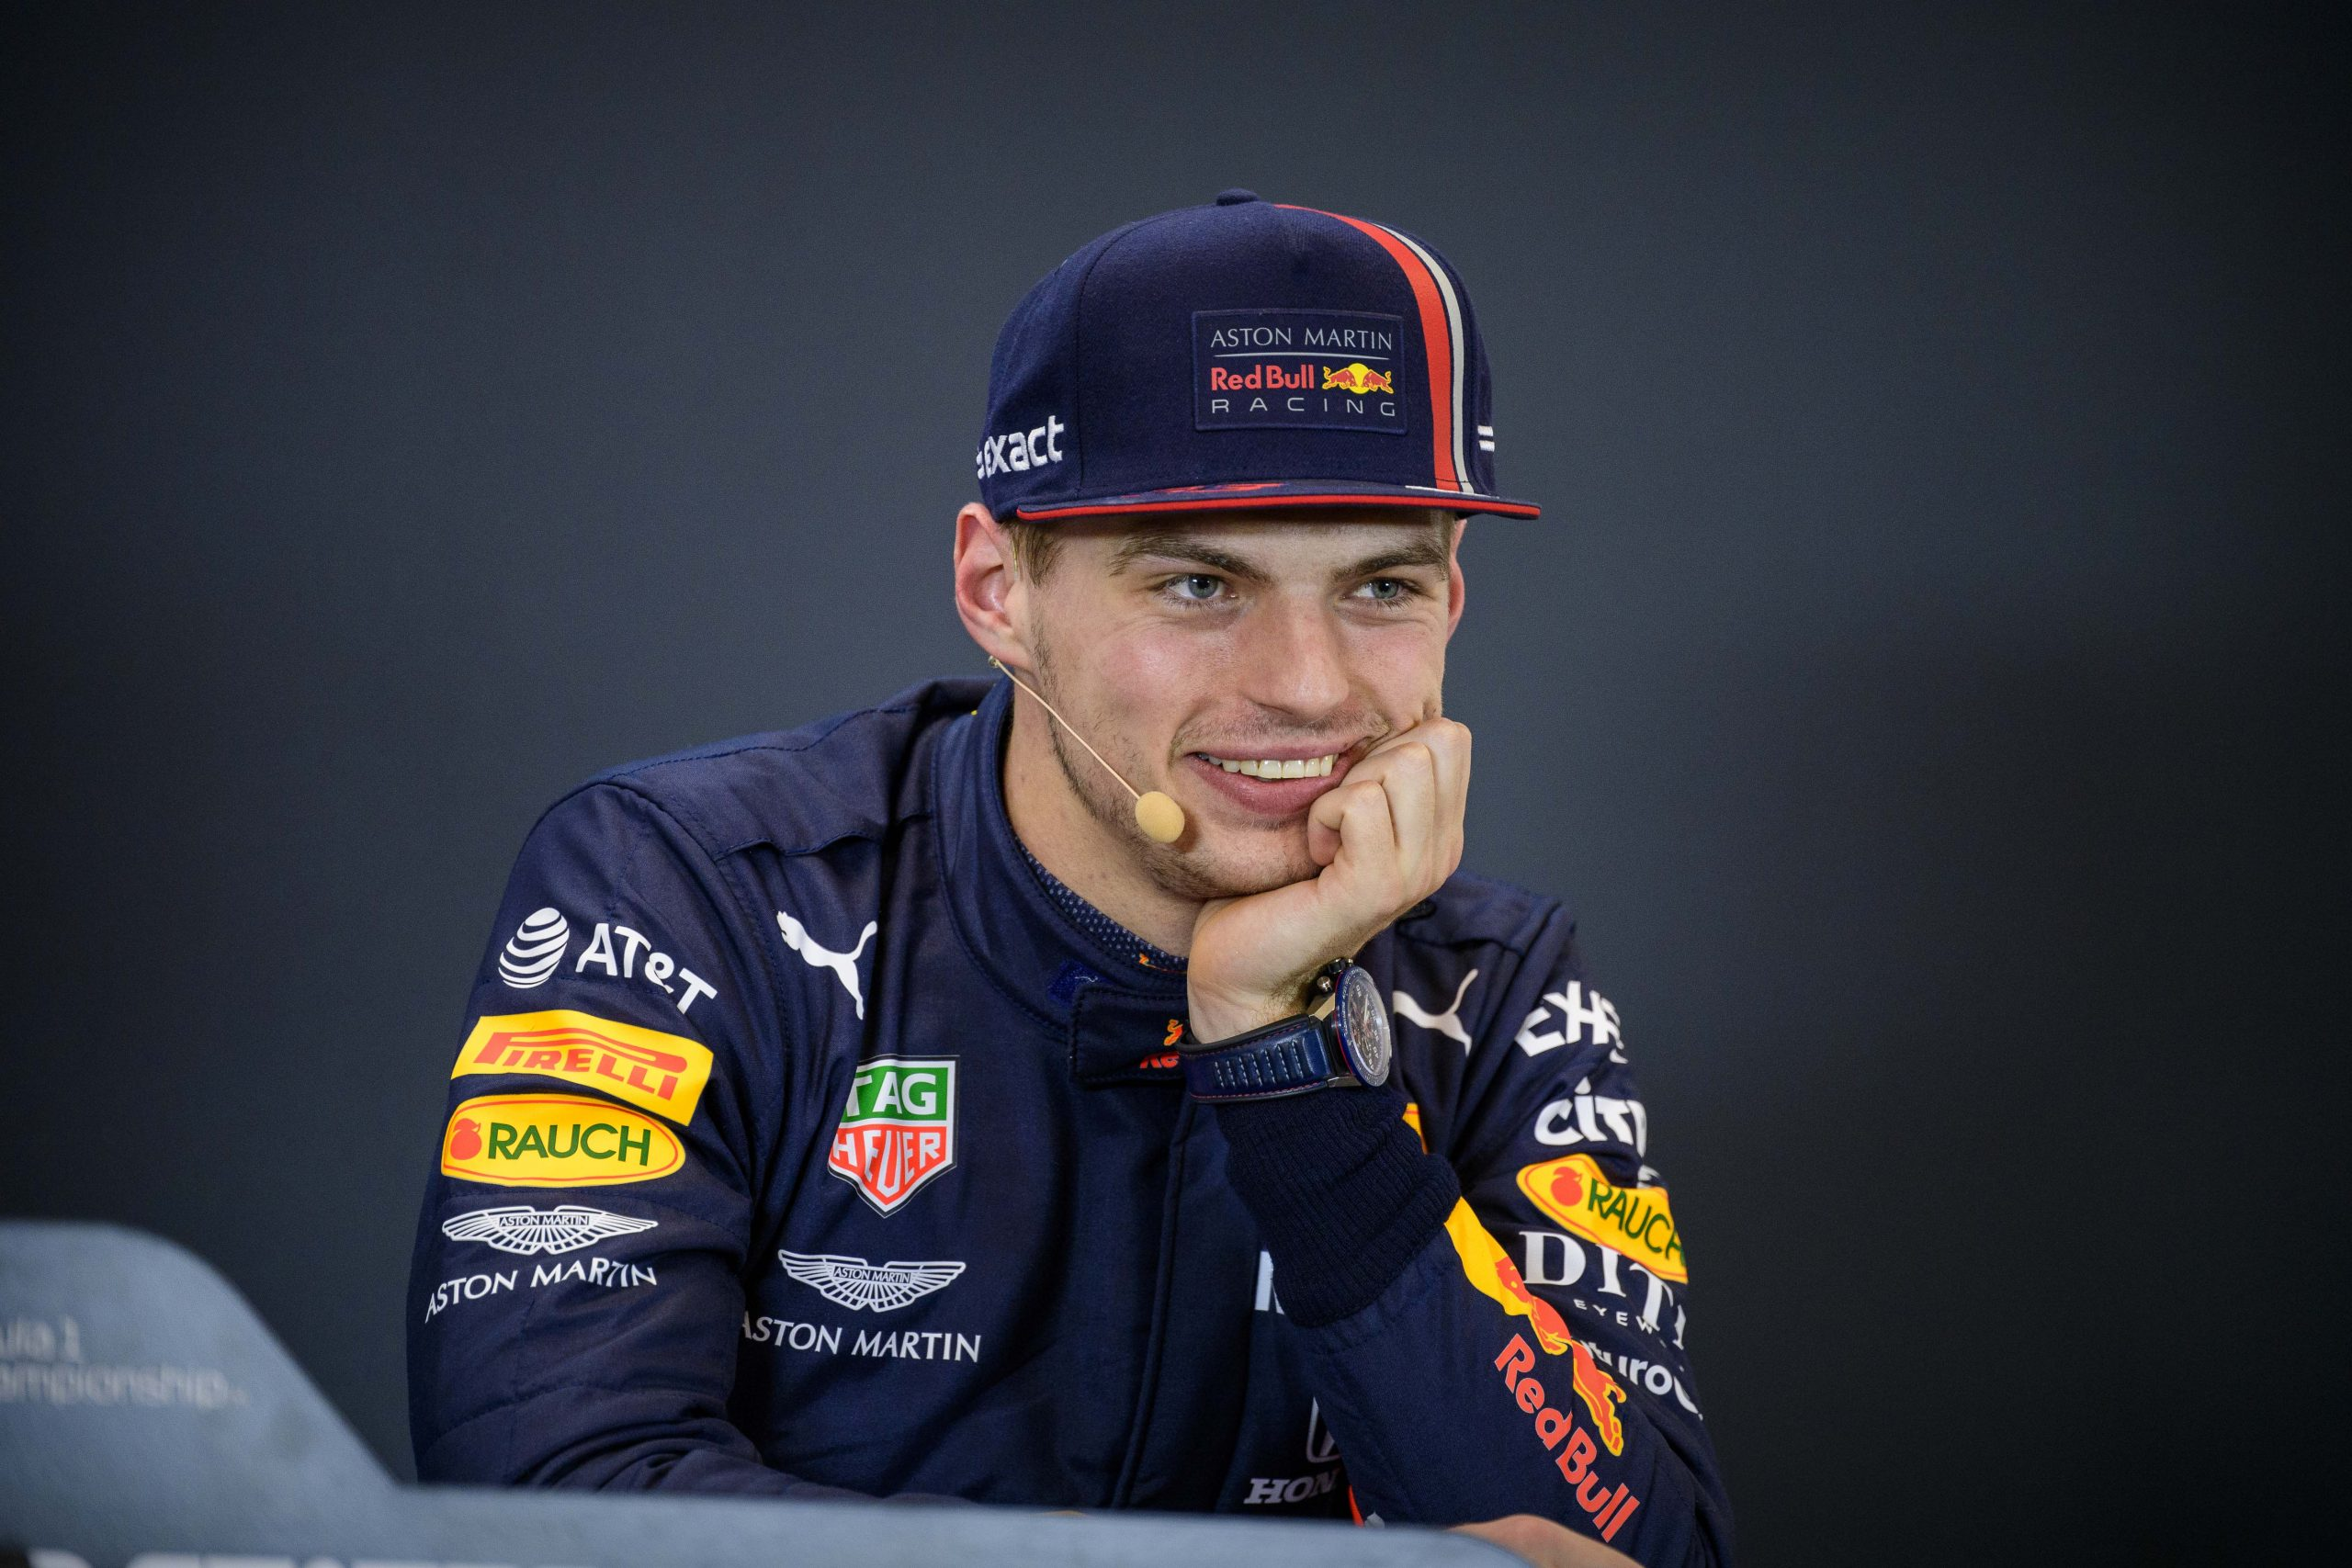 F1 title contender Max Verstappen chooses not to participate in Netflix's Drive to Survive